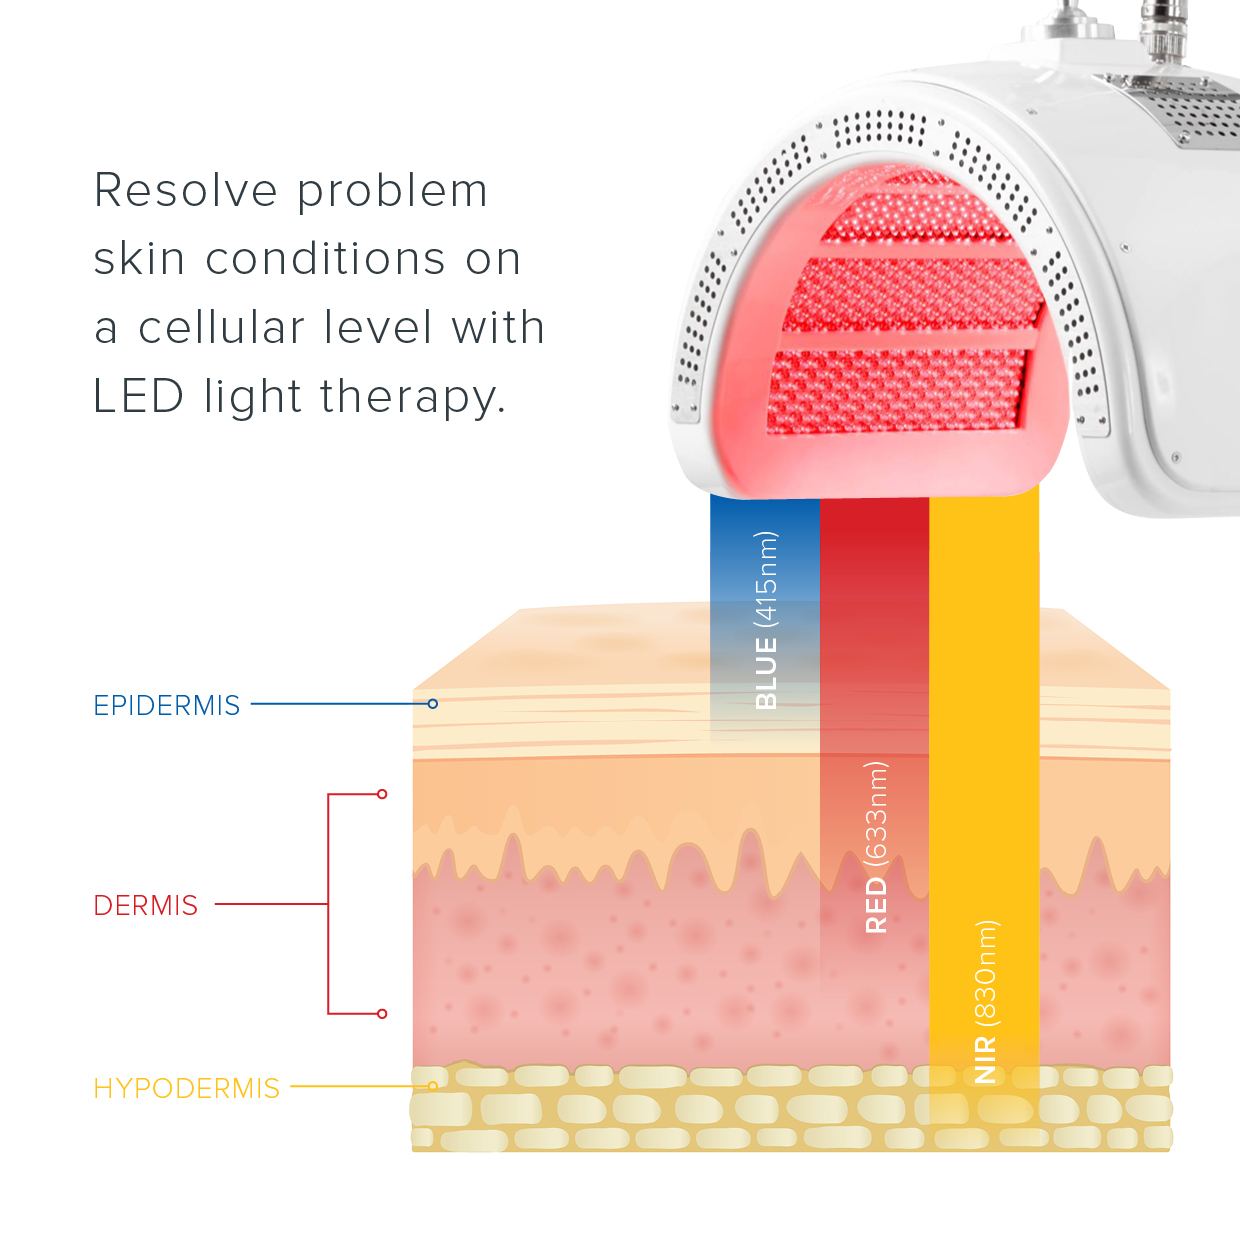 LED light therapy | healing at cellular level